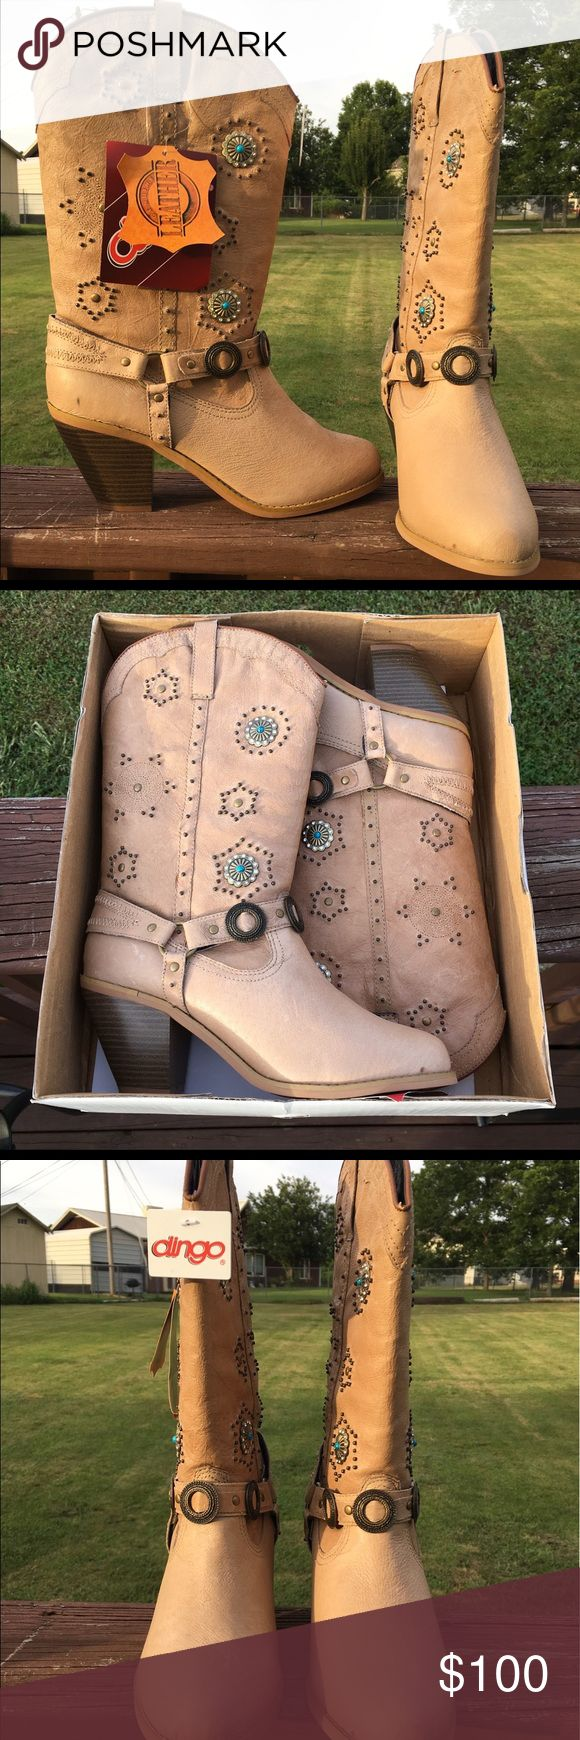 NWT Dingo Cowboy / Cowgirl Boots - Women's size 9 NWT Dingo Cowgirl Boots - Women's size 9M made by Dan Post  These have never been worn, still have the tags and the box! They are beautiful, tan color genuine leather, heeled boots with turquoise accents. Asking $68 (they are much higher at Boot Barn almost double) *****IMPORTANT: Please message me before buying to confirm availability as these are subject to possible sale locally!! I will make every effort to remove asap if sold…